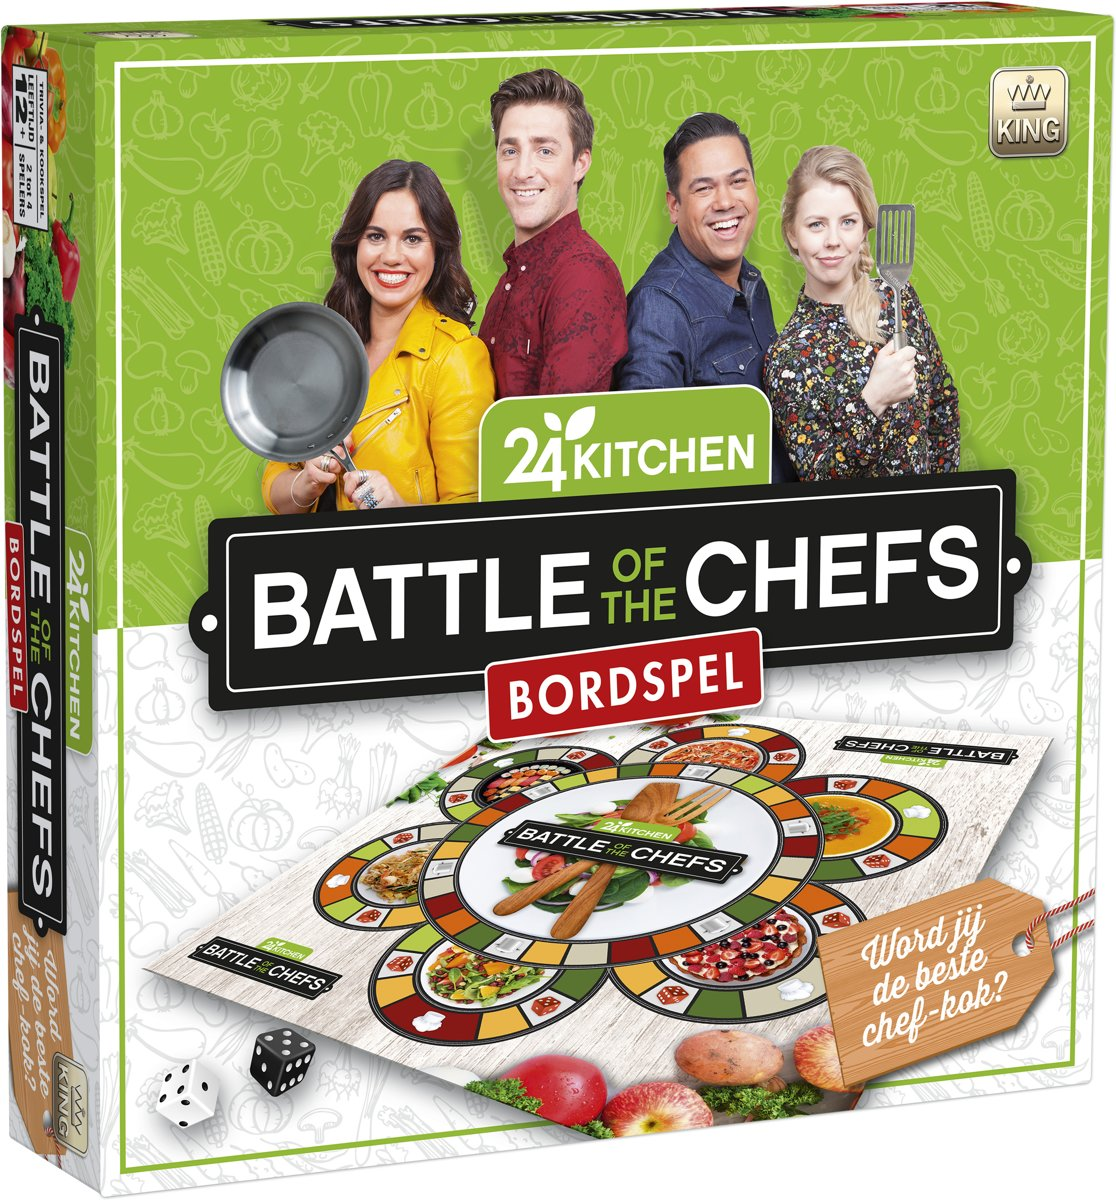 24Kitchen Battle of the Chefs